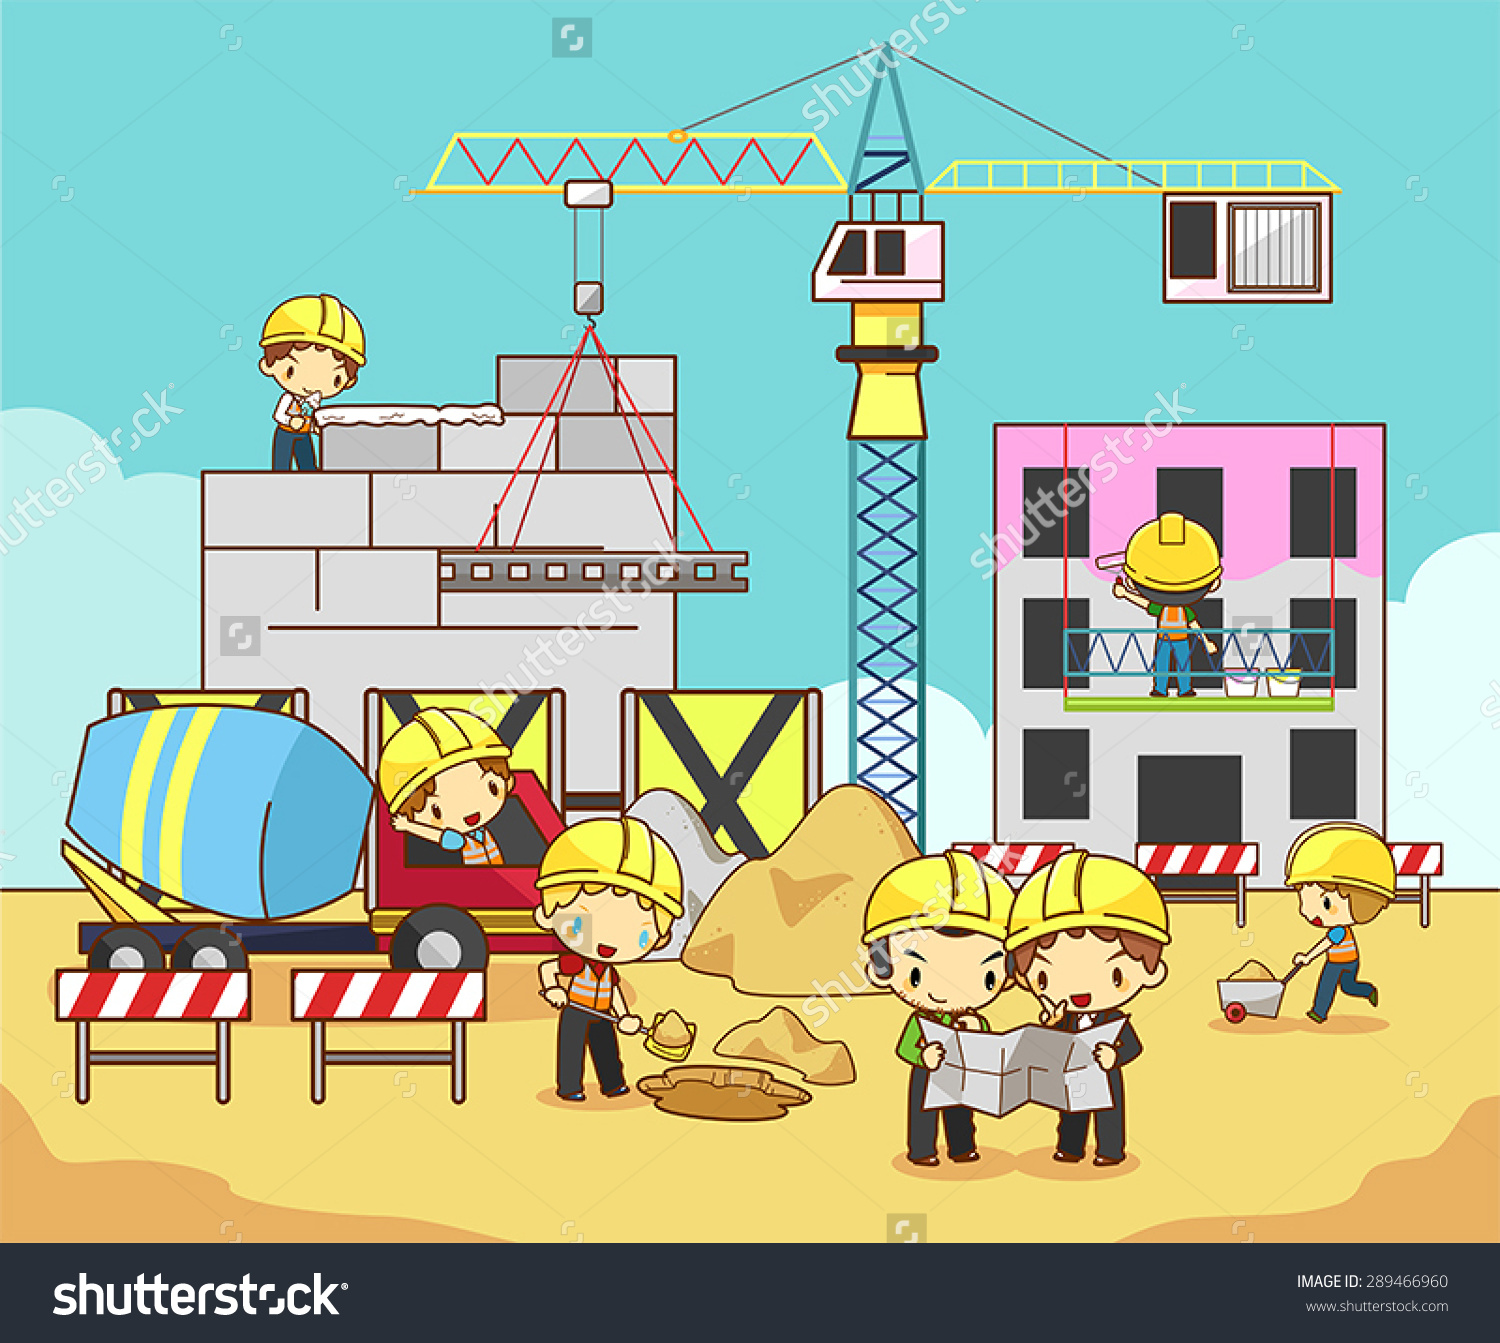 Construction Site Vector Clip Art Free.